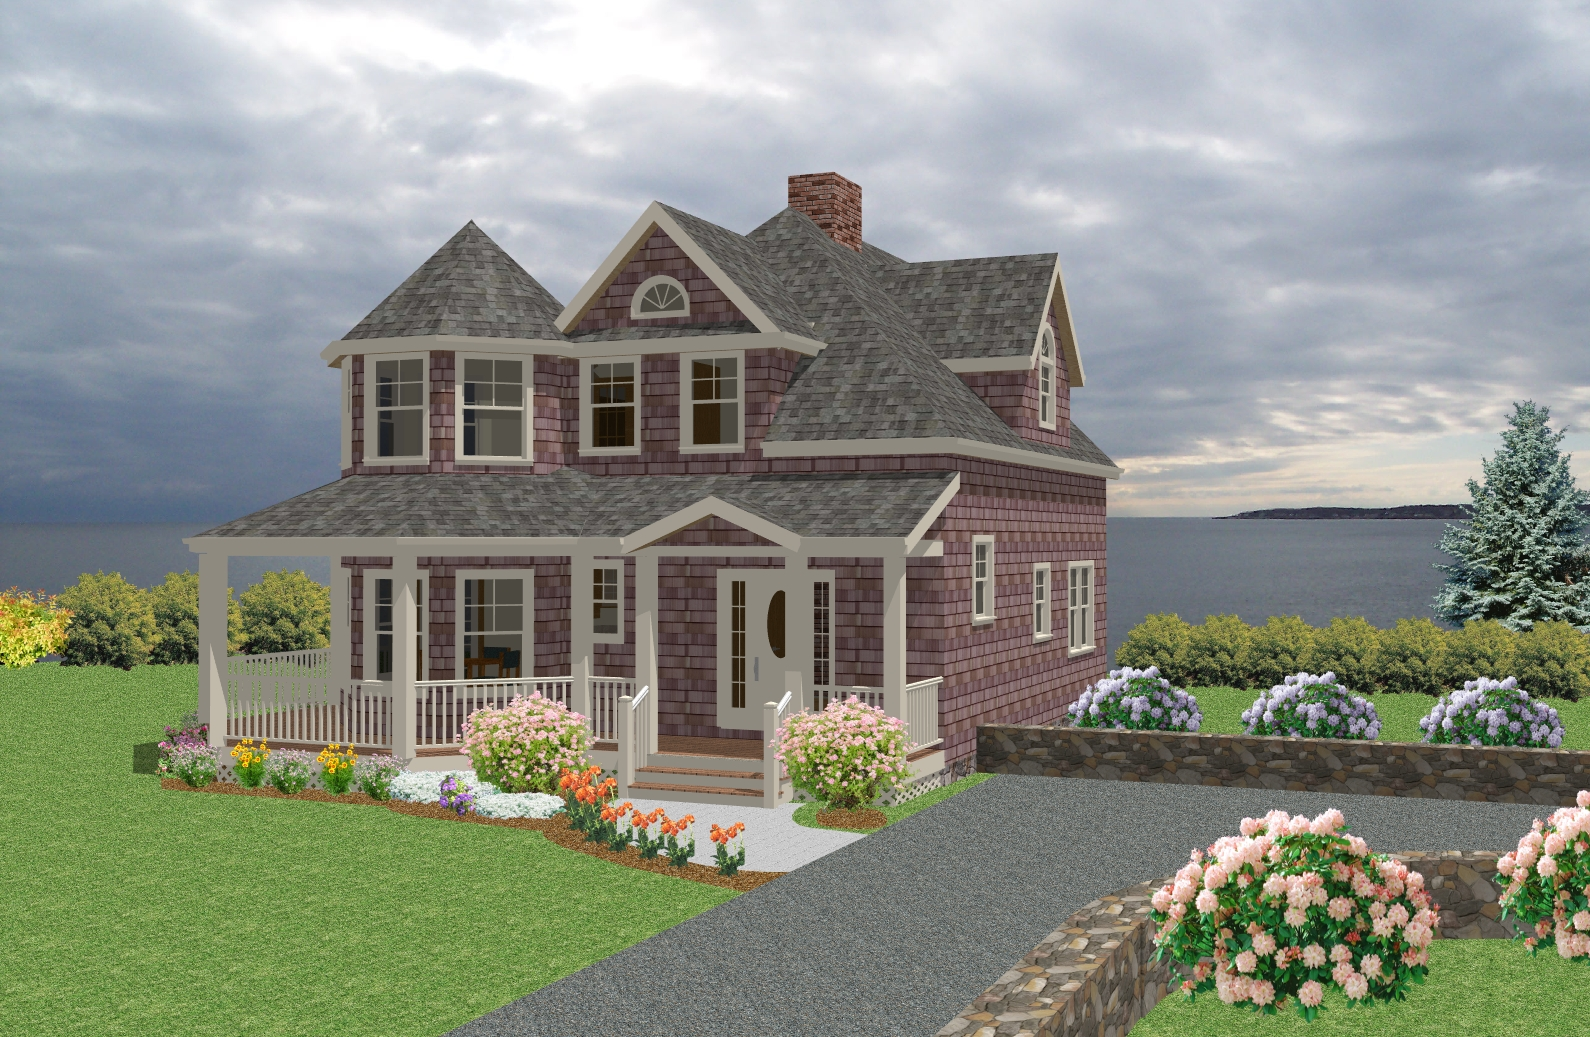 1519 sq ft traditional cottage house plan with 3 bedrooms and 2 5